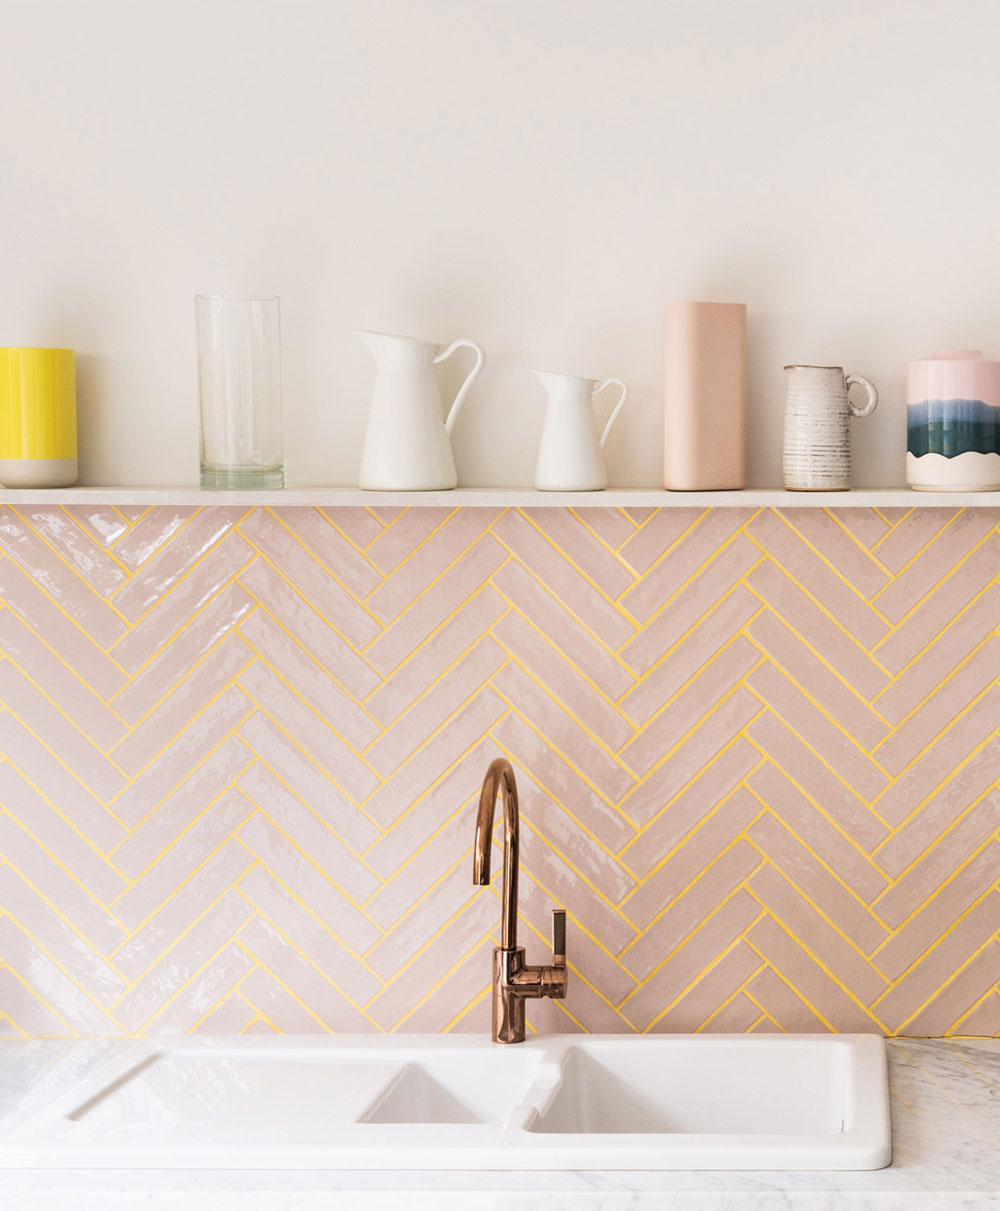 My future kitchen renovation ideas are over on the blog, including peach gloss tiles in a herringbone pattern.